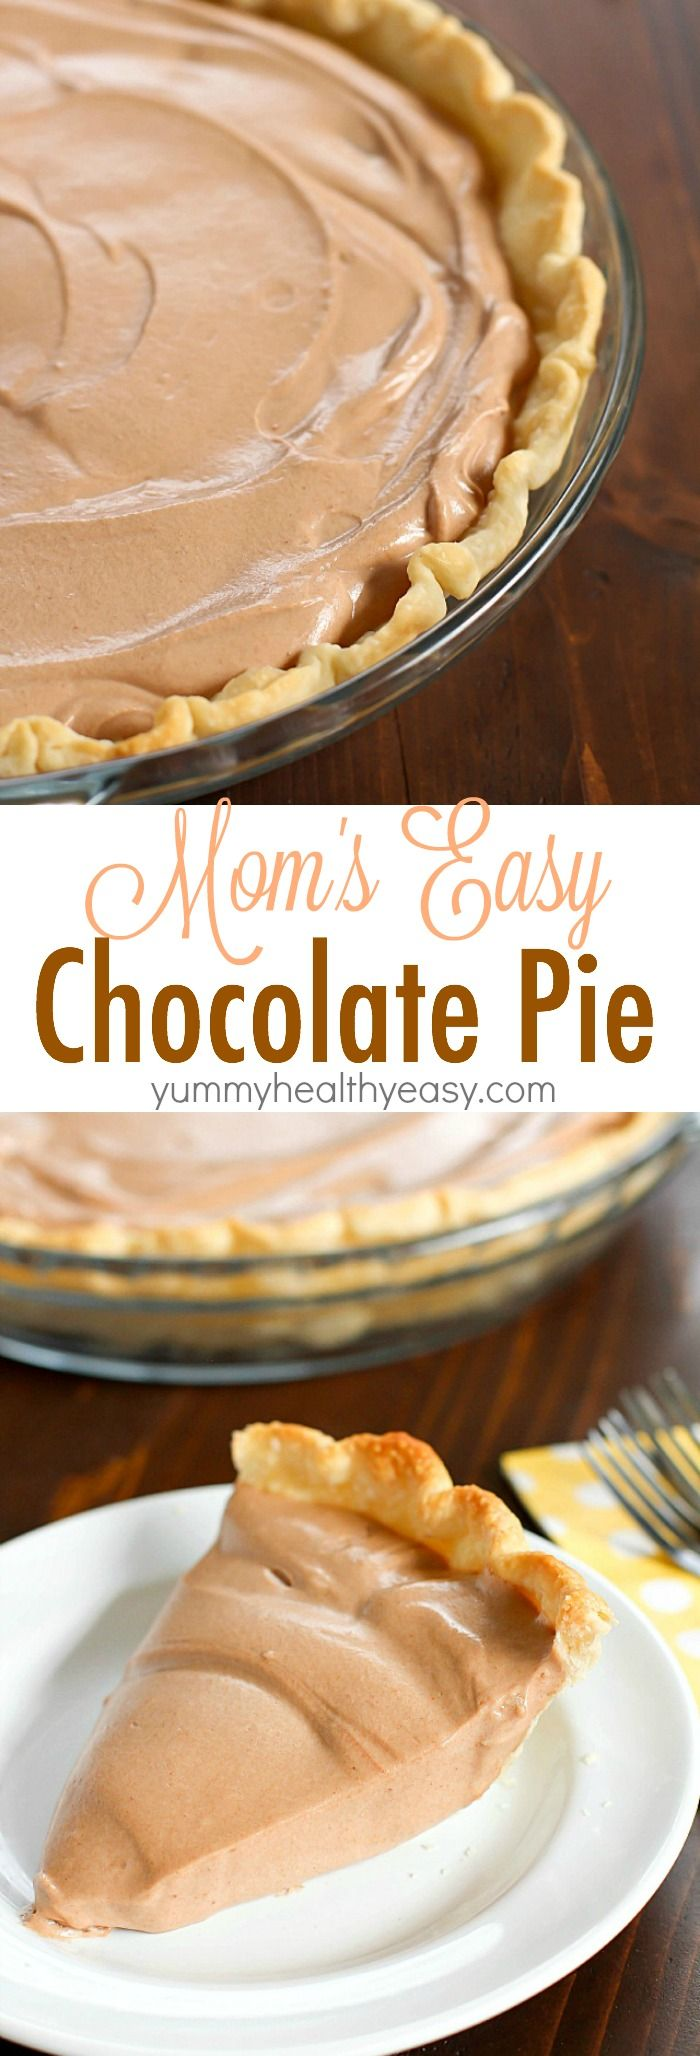 An incredibly Easy Chocolate Pie recipe that my Mom makes every Thanksgiving as a tradition. This is so simple and uses no pudding. This is a family favorite chocolate pie! A must for your holiday dessert table!